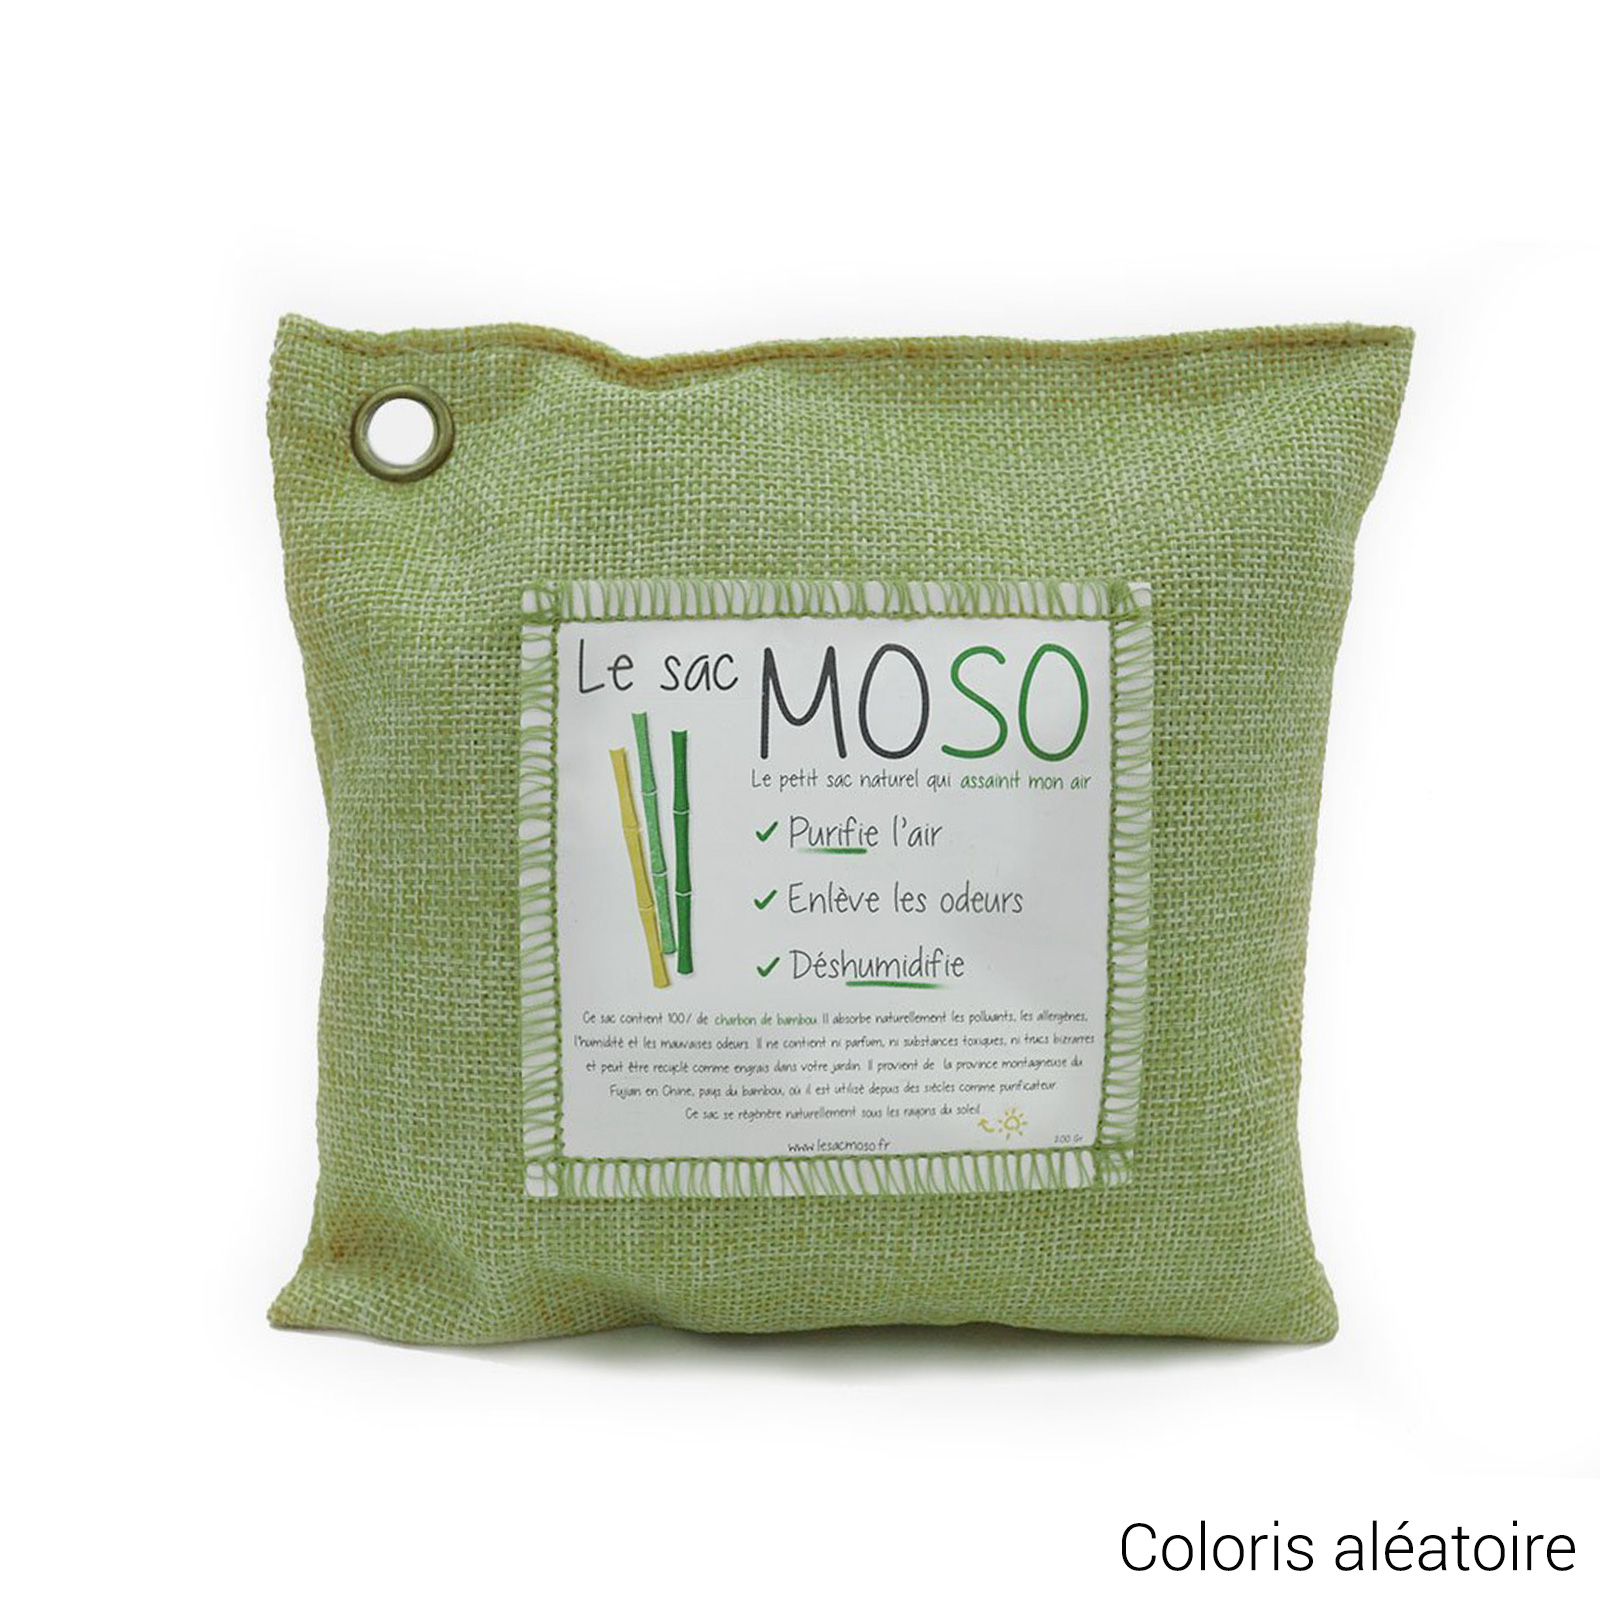 Purificateur Moso D'air Sac Purificateur Sac Purificateur Moso Moso Moso Purificateur Sac Sac D'air D'air kTZPXuOi